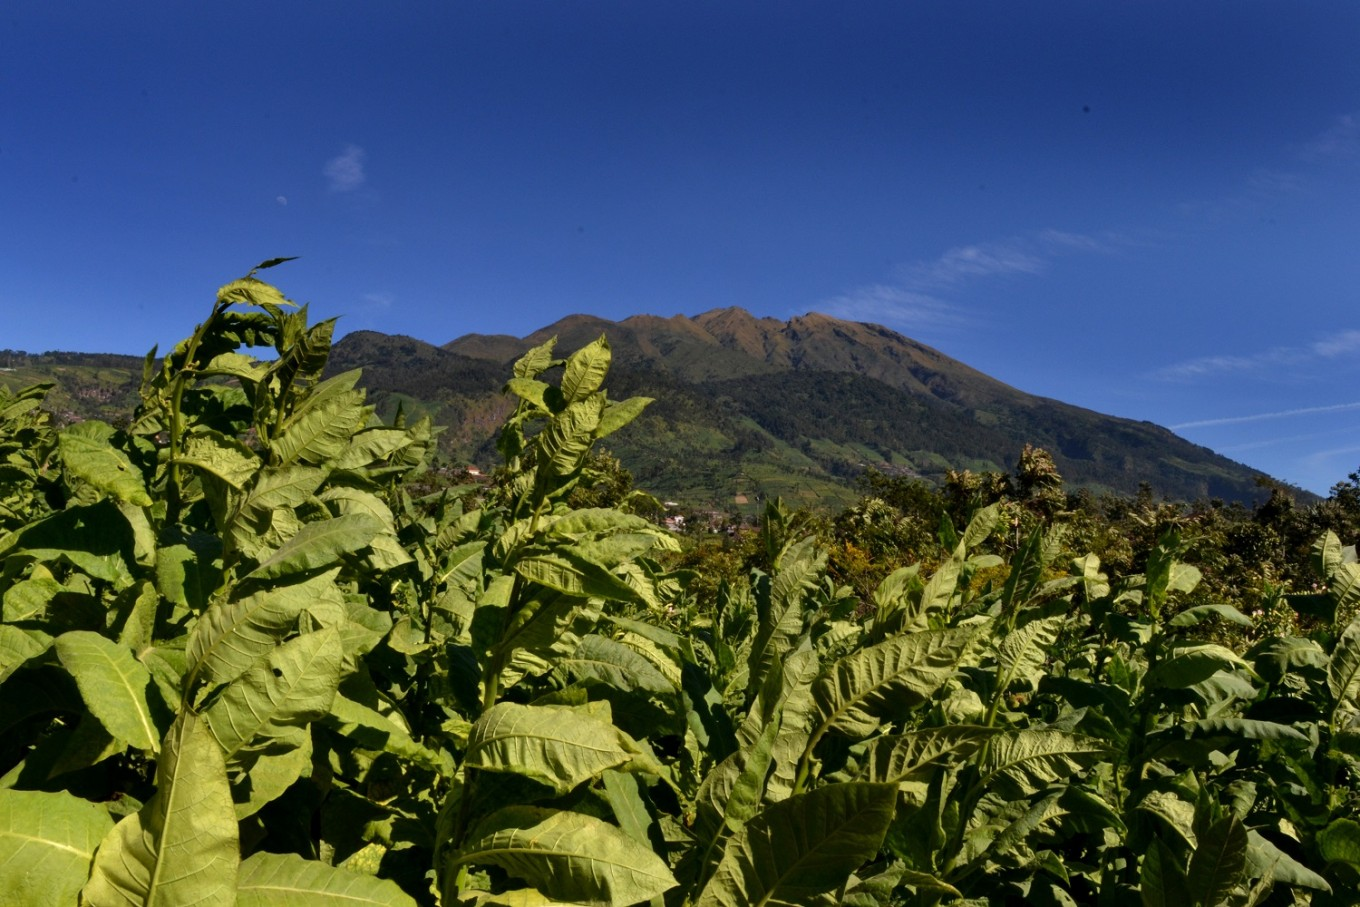 A tobacco plantation in Senden village, Selo district, Boyolali, Central Java.